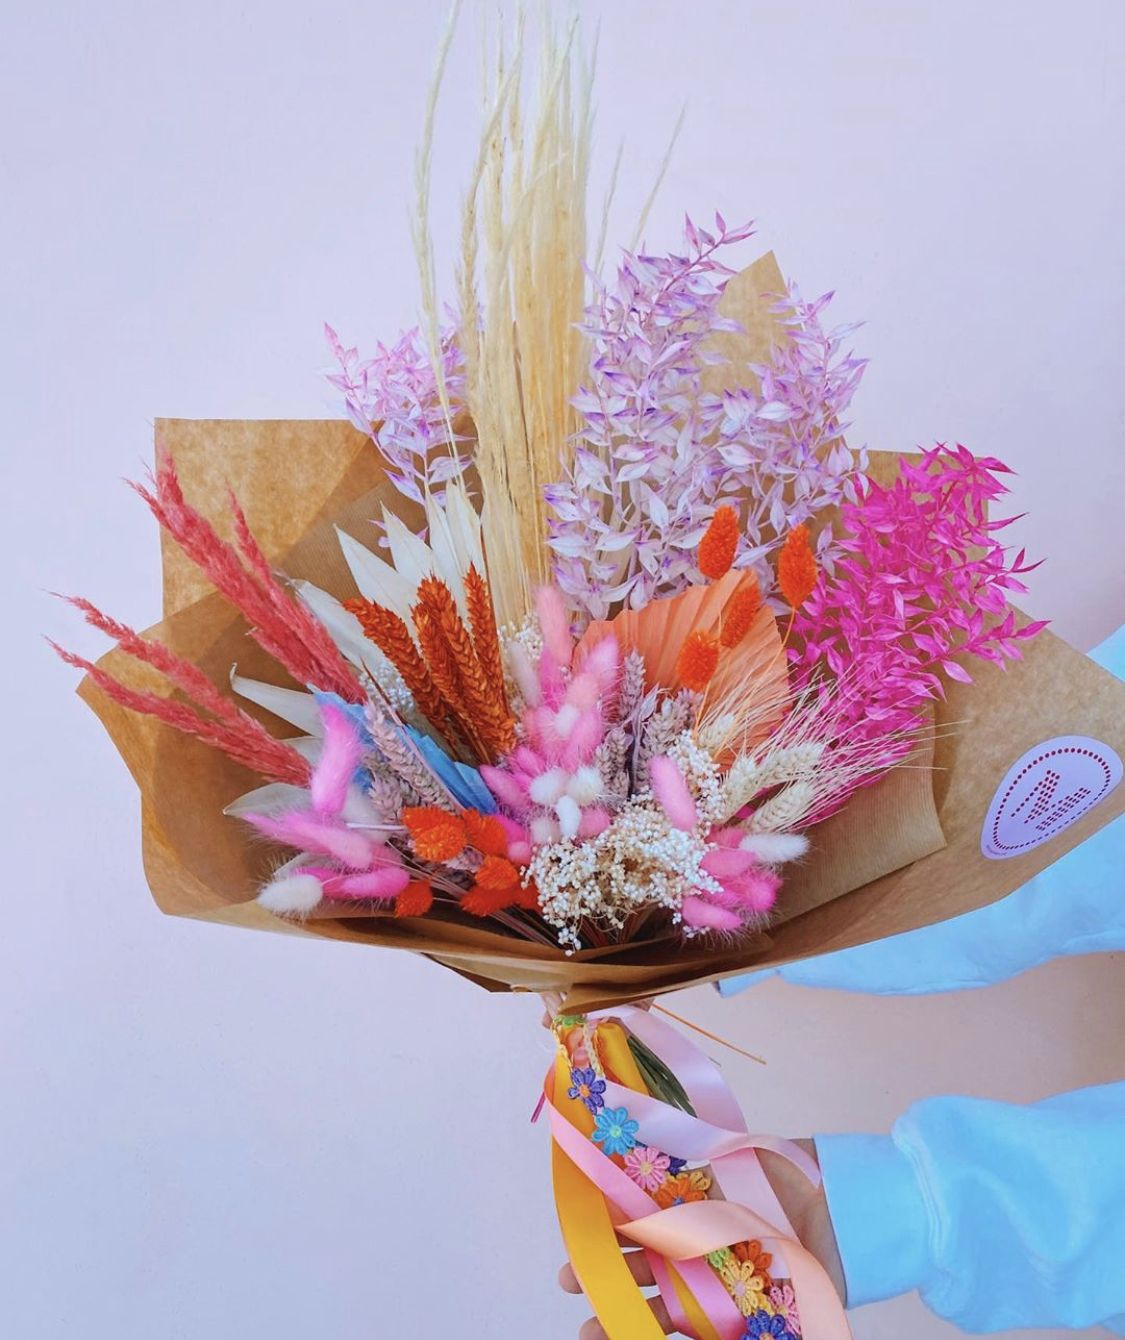 Mud Urban Flowers Glasgow Edinburgh In 2020 Dried Flower Bouquet Flower Delivery Flower Subscription